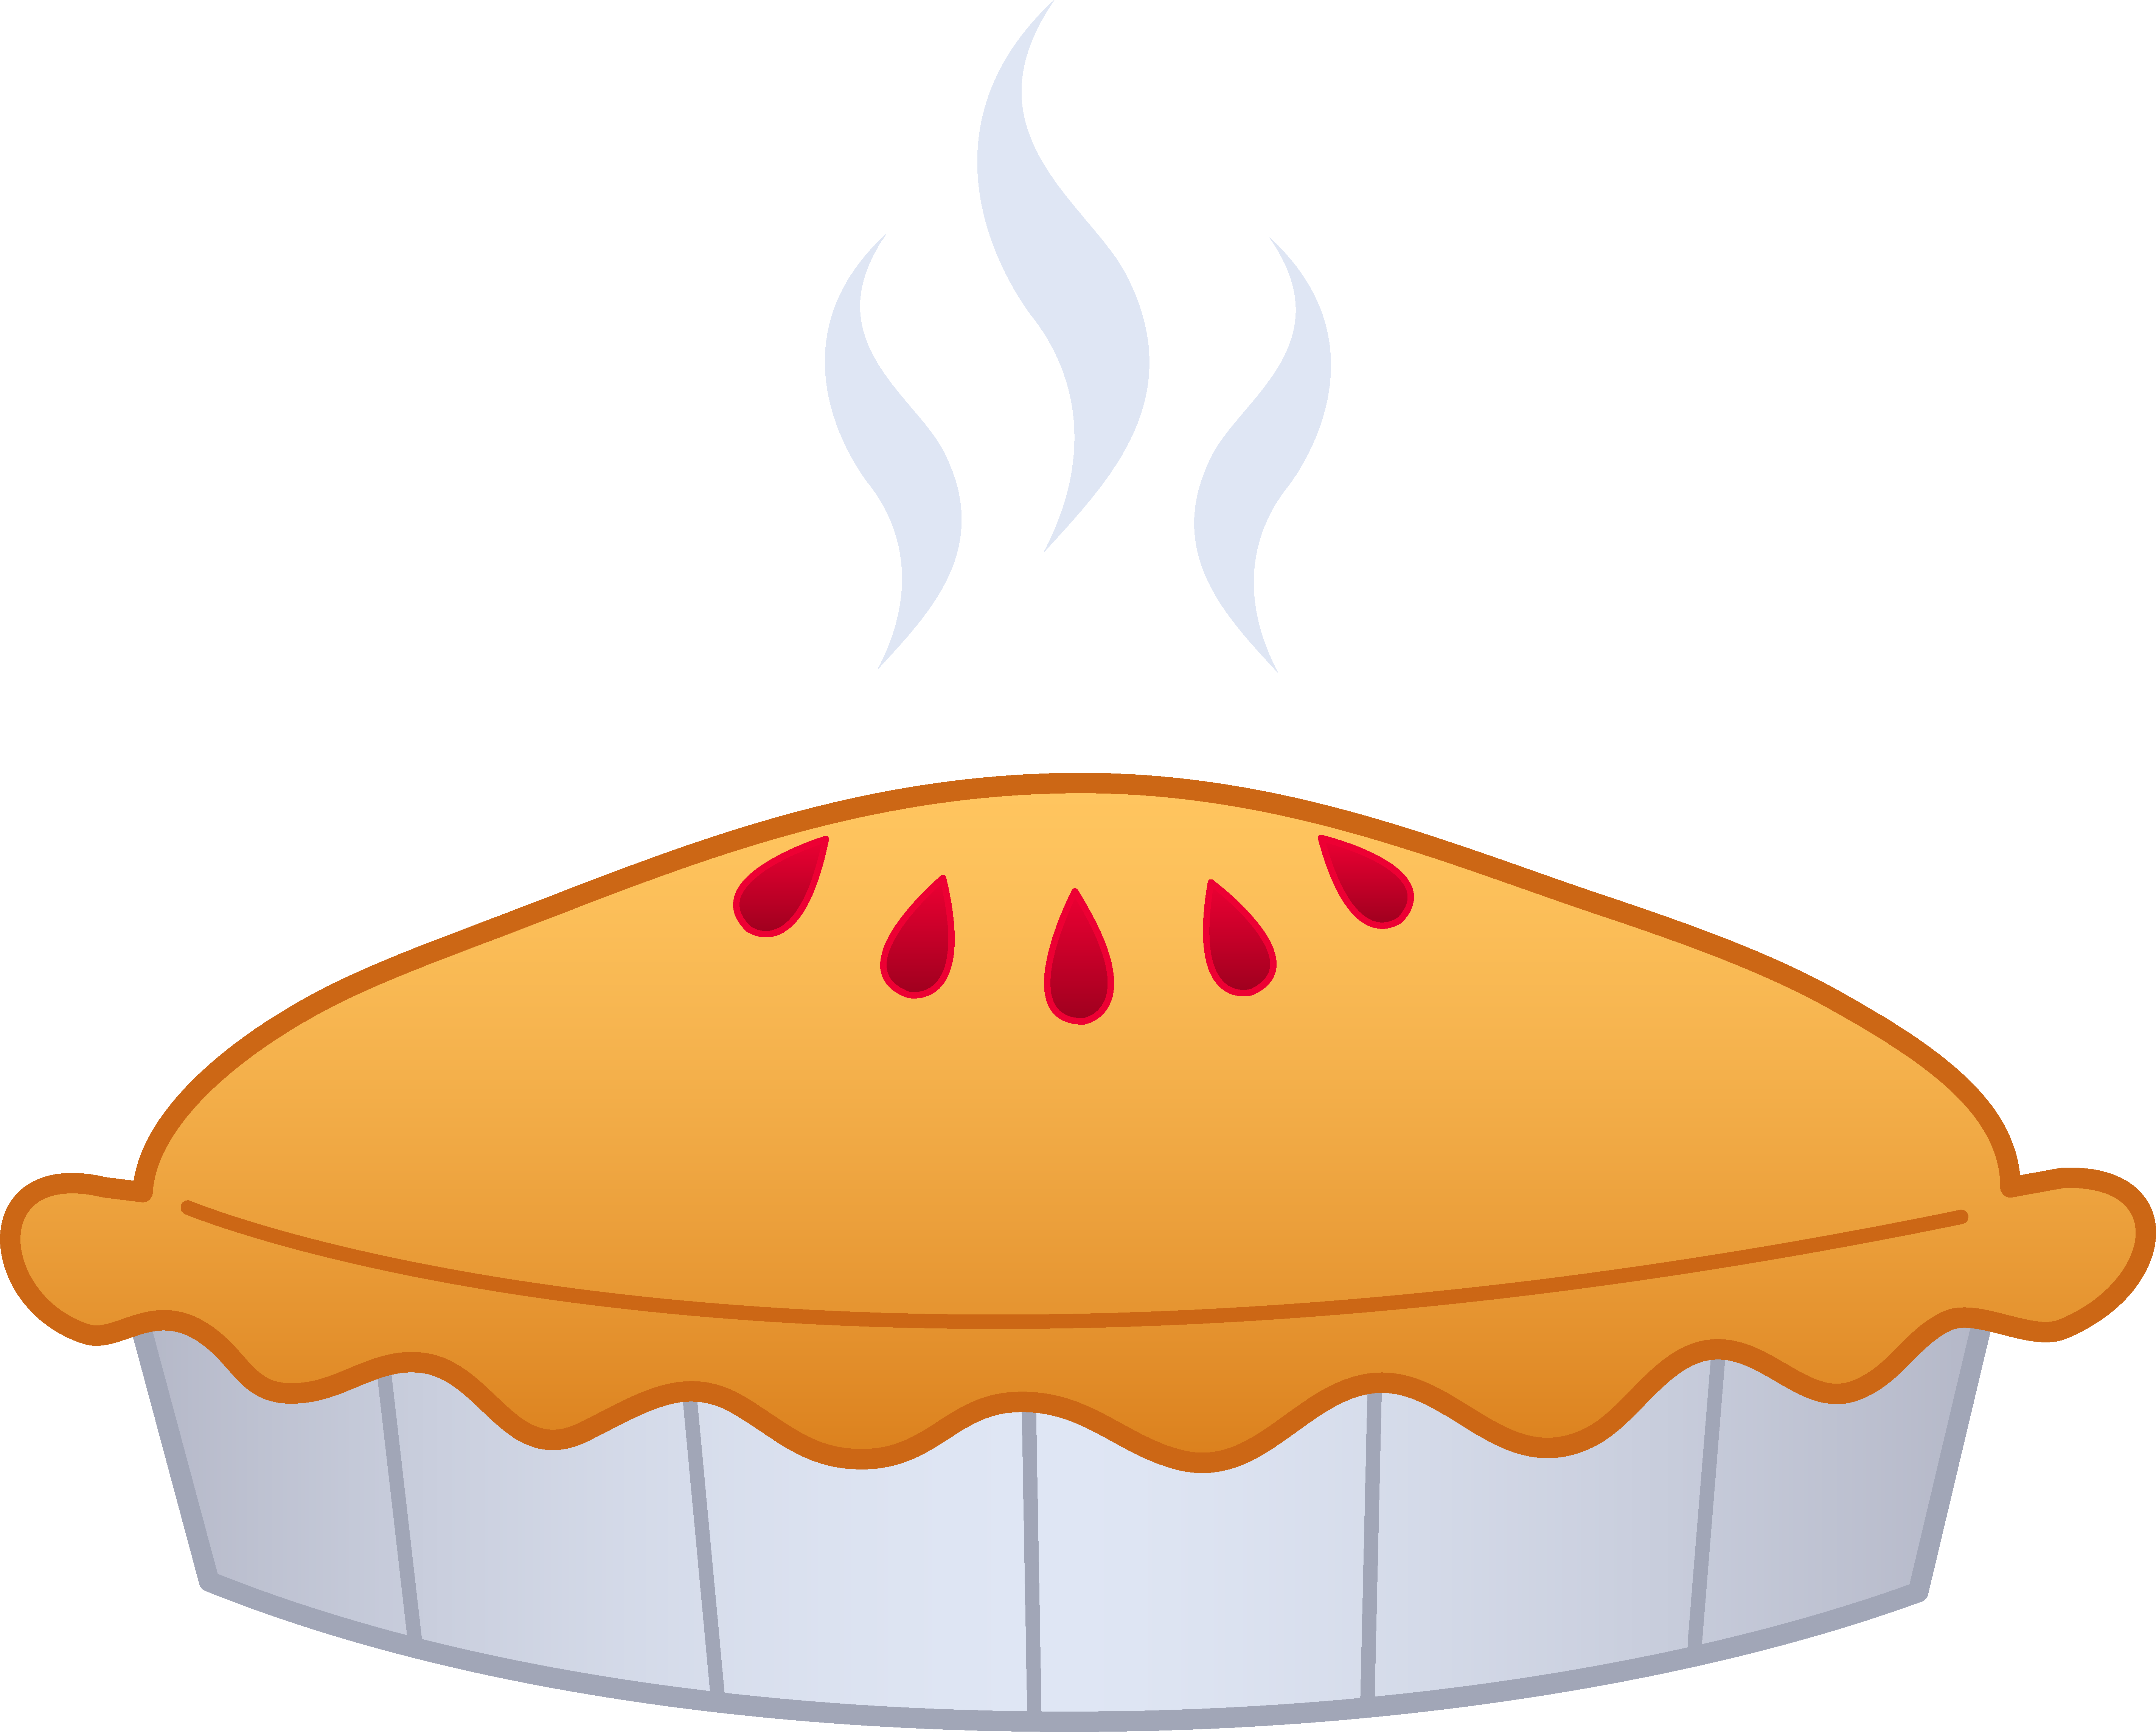 Tart clipart cartoon Pie Free on Clip Download